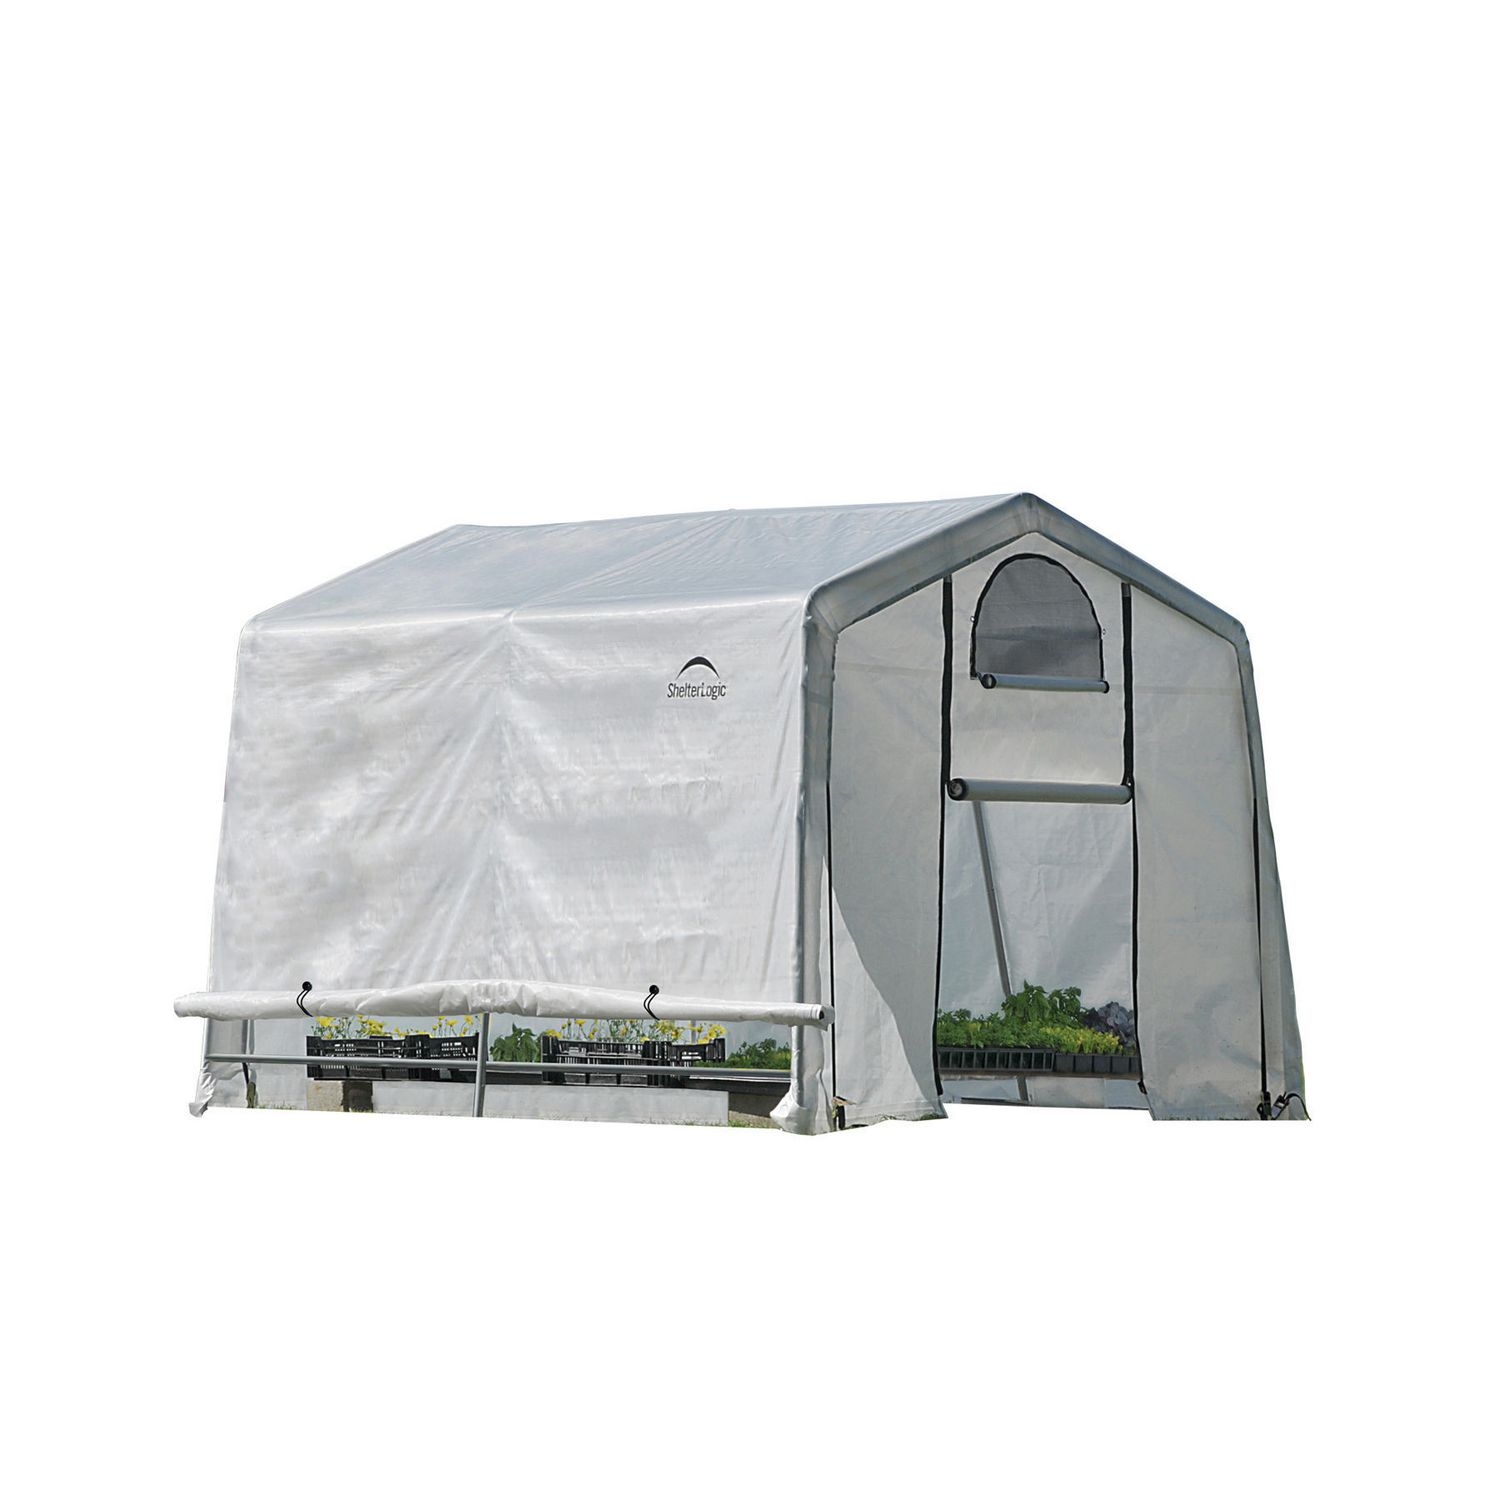 Serre 8x10 Growit Greenhouse In A Box Easy Flow Greenhouse Peak Style 10 Ft X 10 Ft X 8 Ft